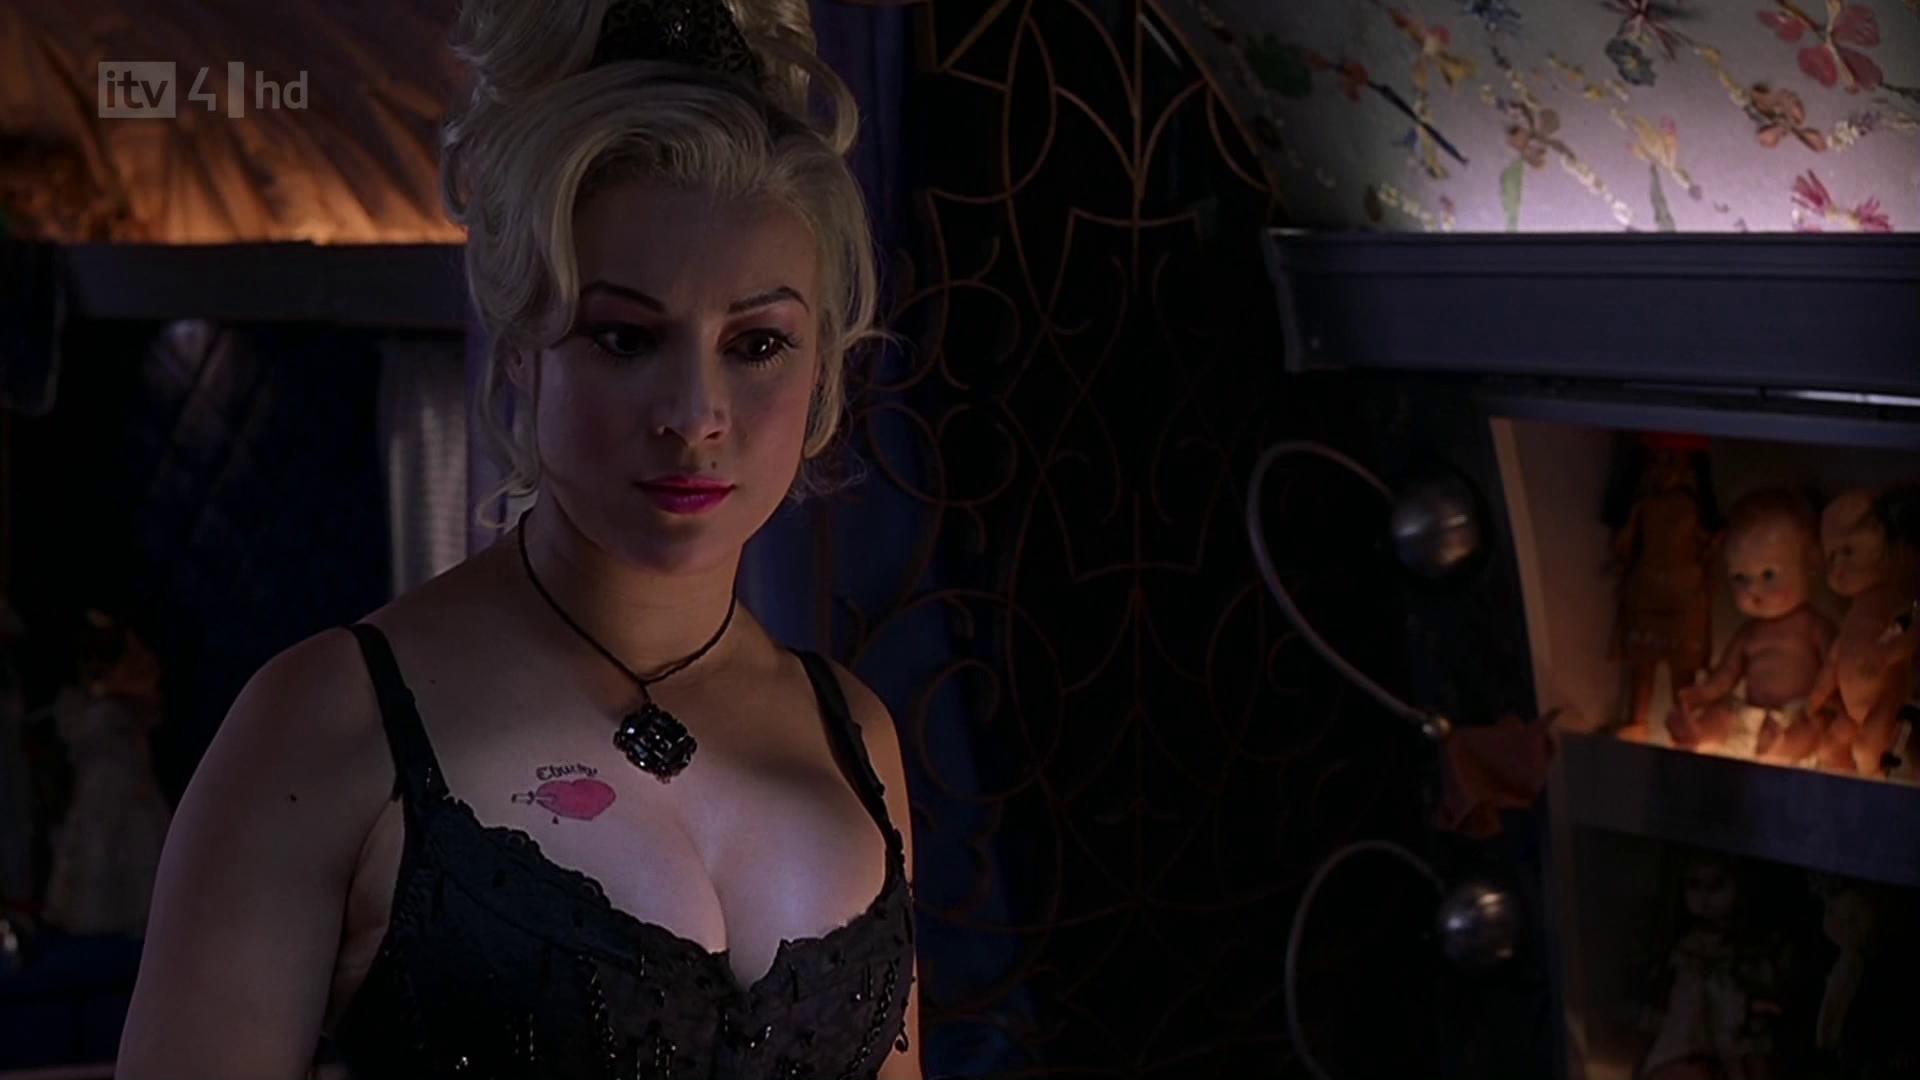 Bride Of Chucky Jennifer Tilly Image 28949796 Fanpop  : Bride Of Chucky jennifer tilly 28949796 1920 1080 from www.fanpop.com size 1920 x 1080 jpeg 99kB